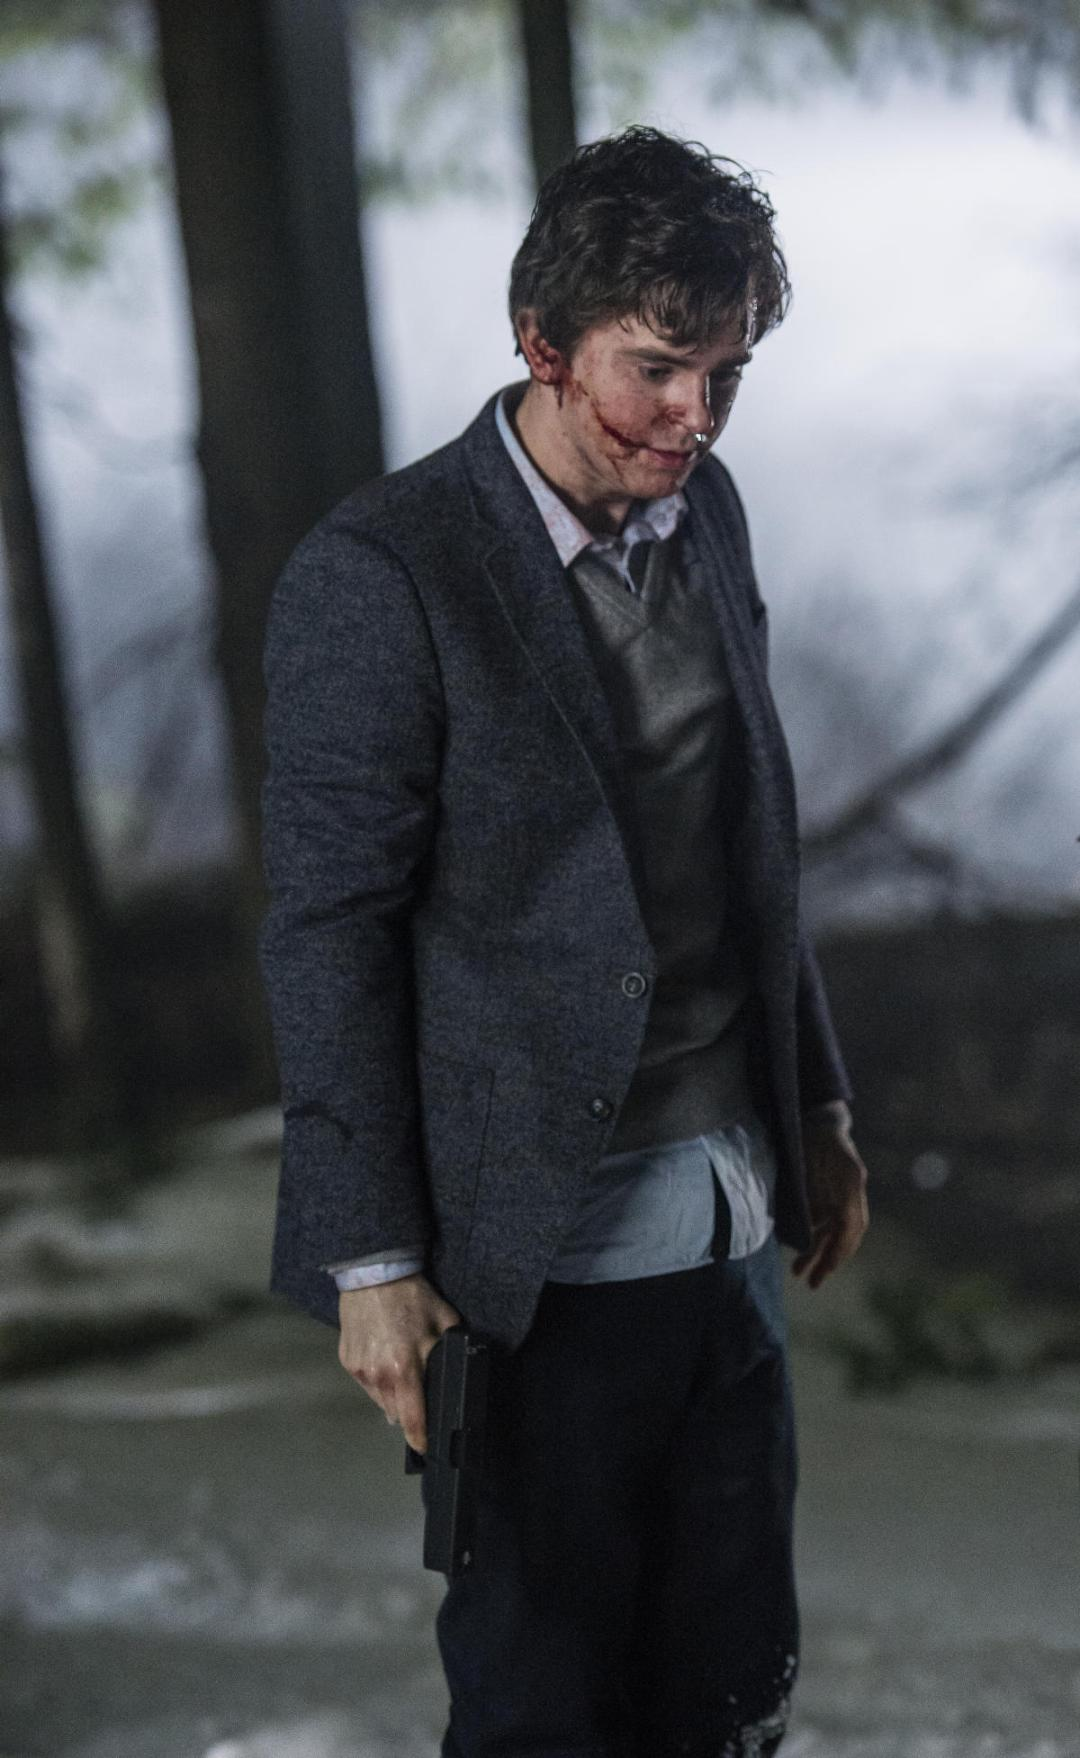 Final Previews for the 'Bates Motel' Finale!